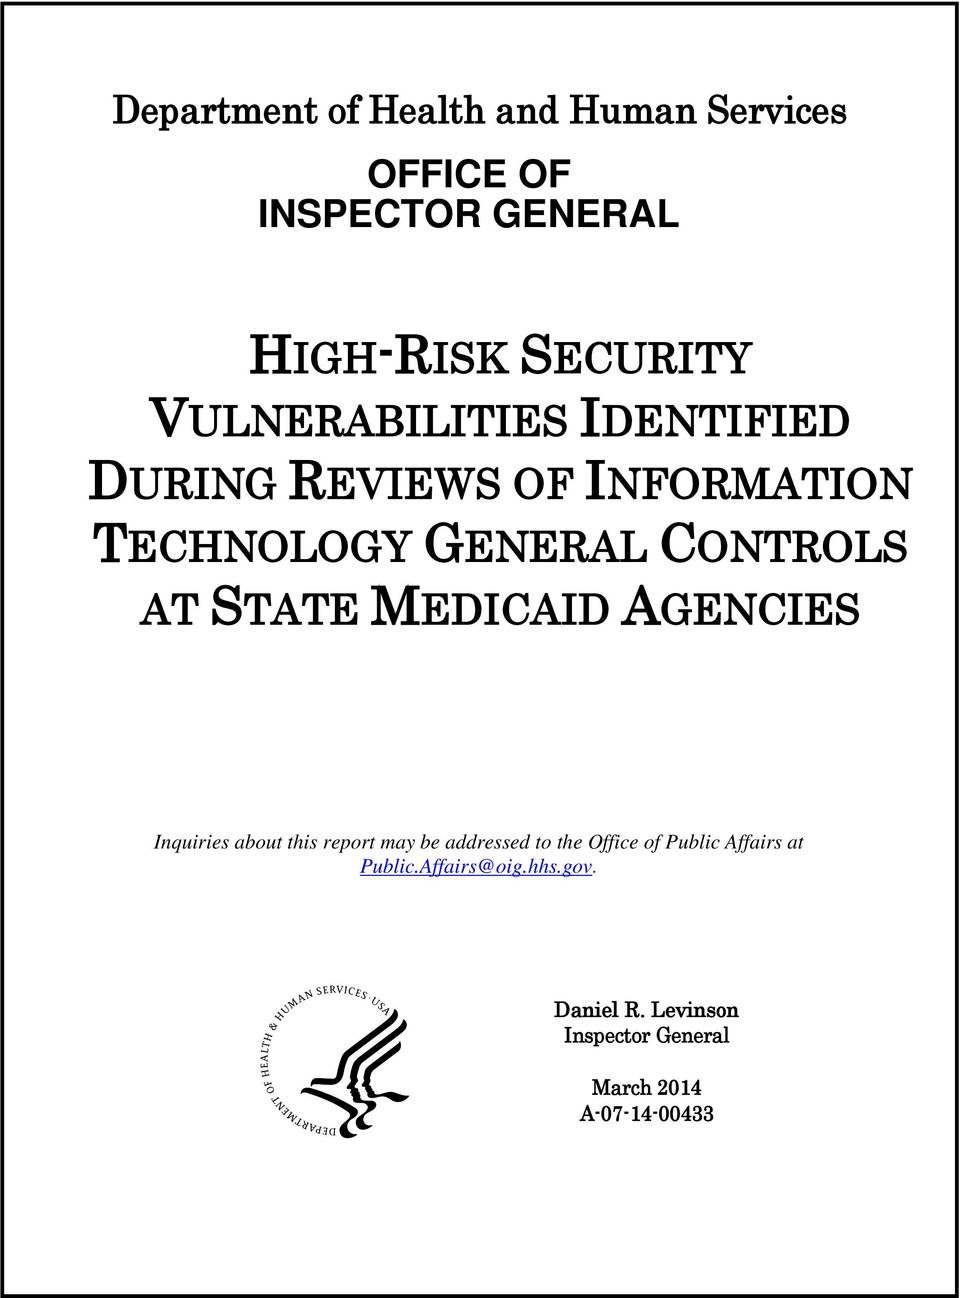 STATE MEDICAID AGENCIES Inquiries about this report may be addressed to the Office of